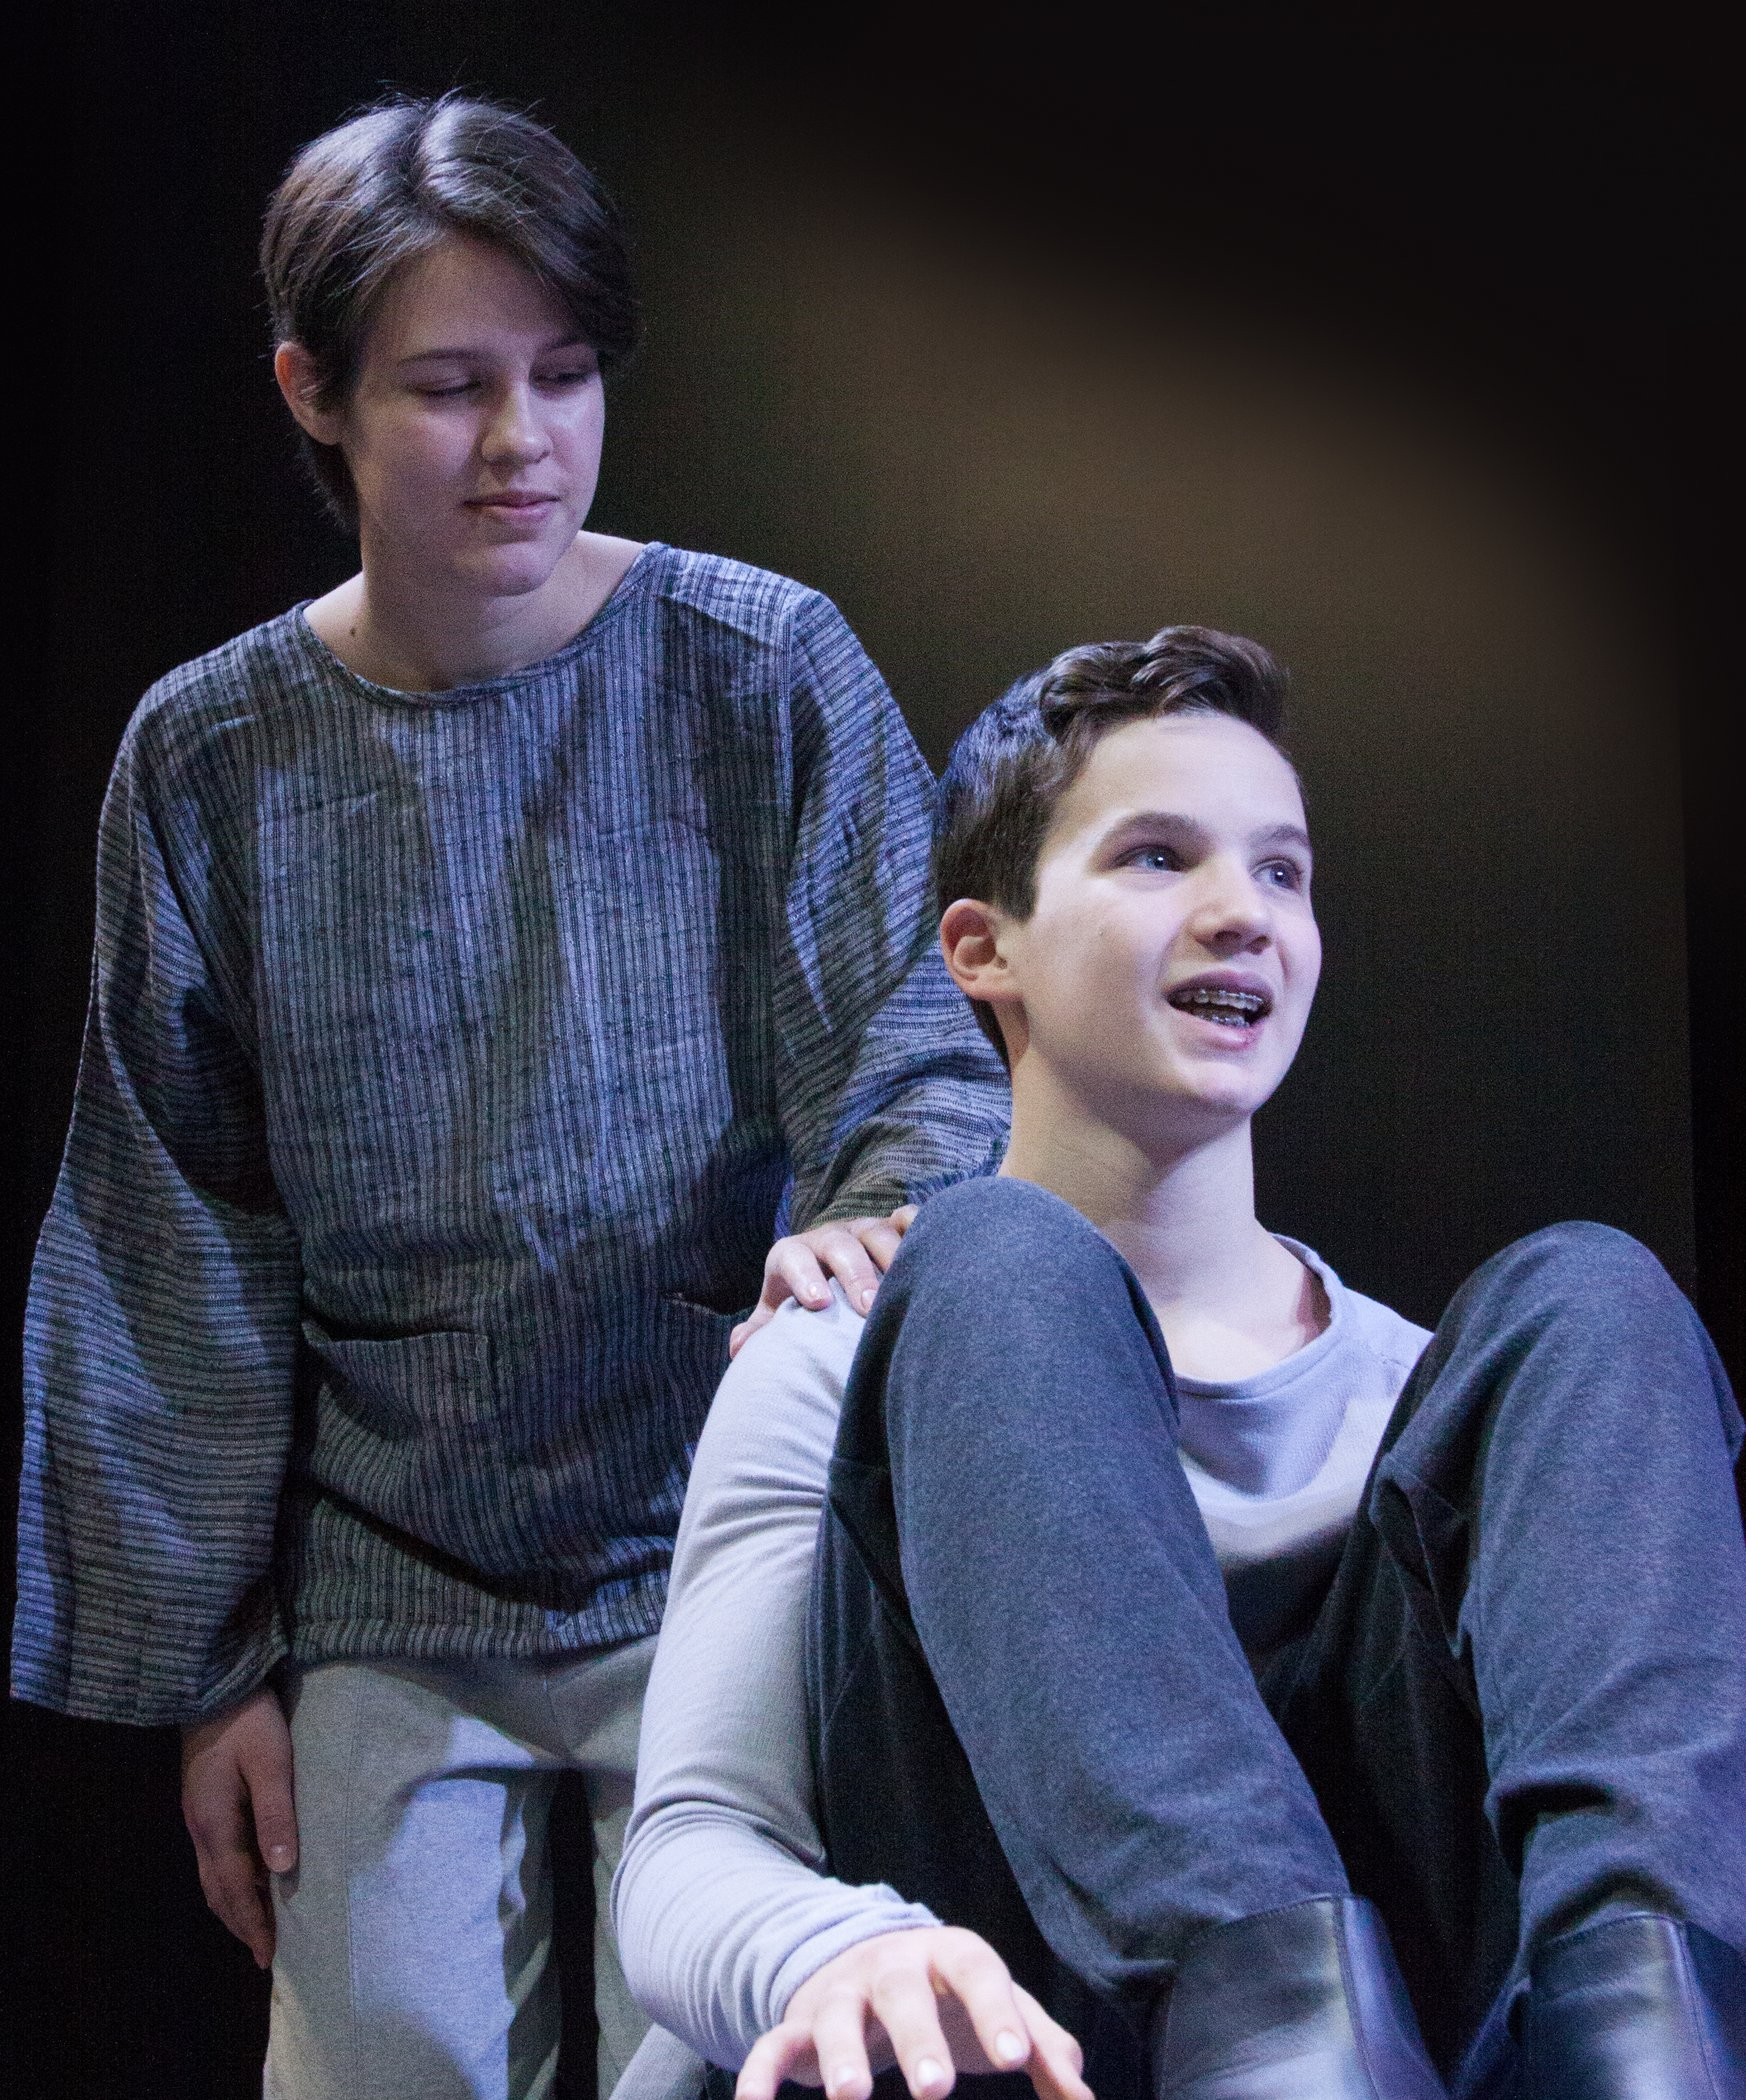 Lilly Einsig and Chris Beaudoin in The Giver